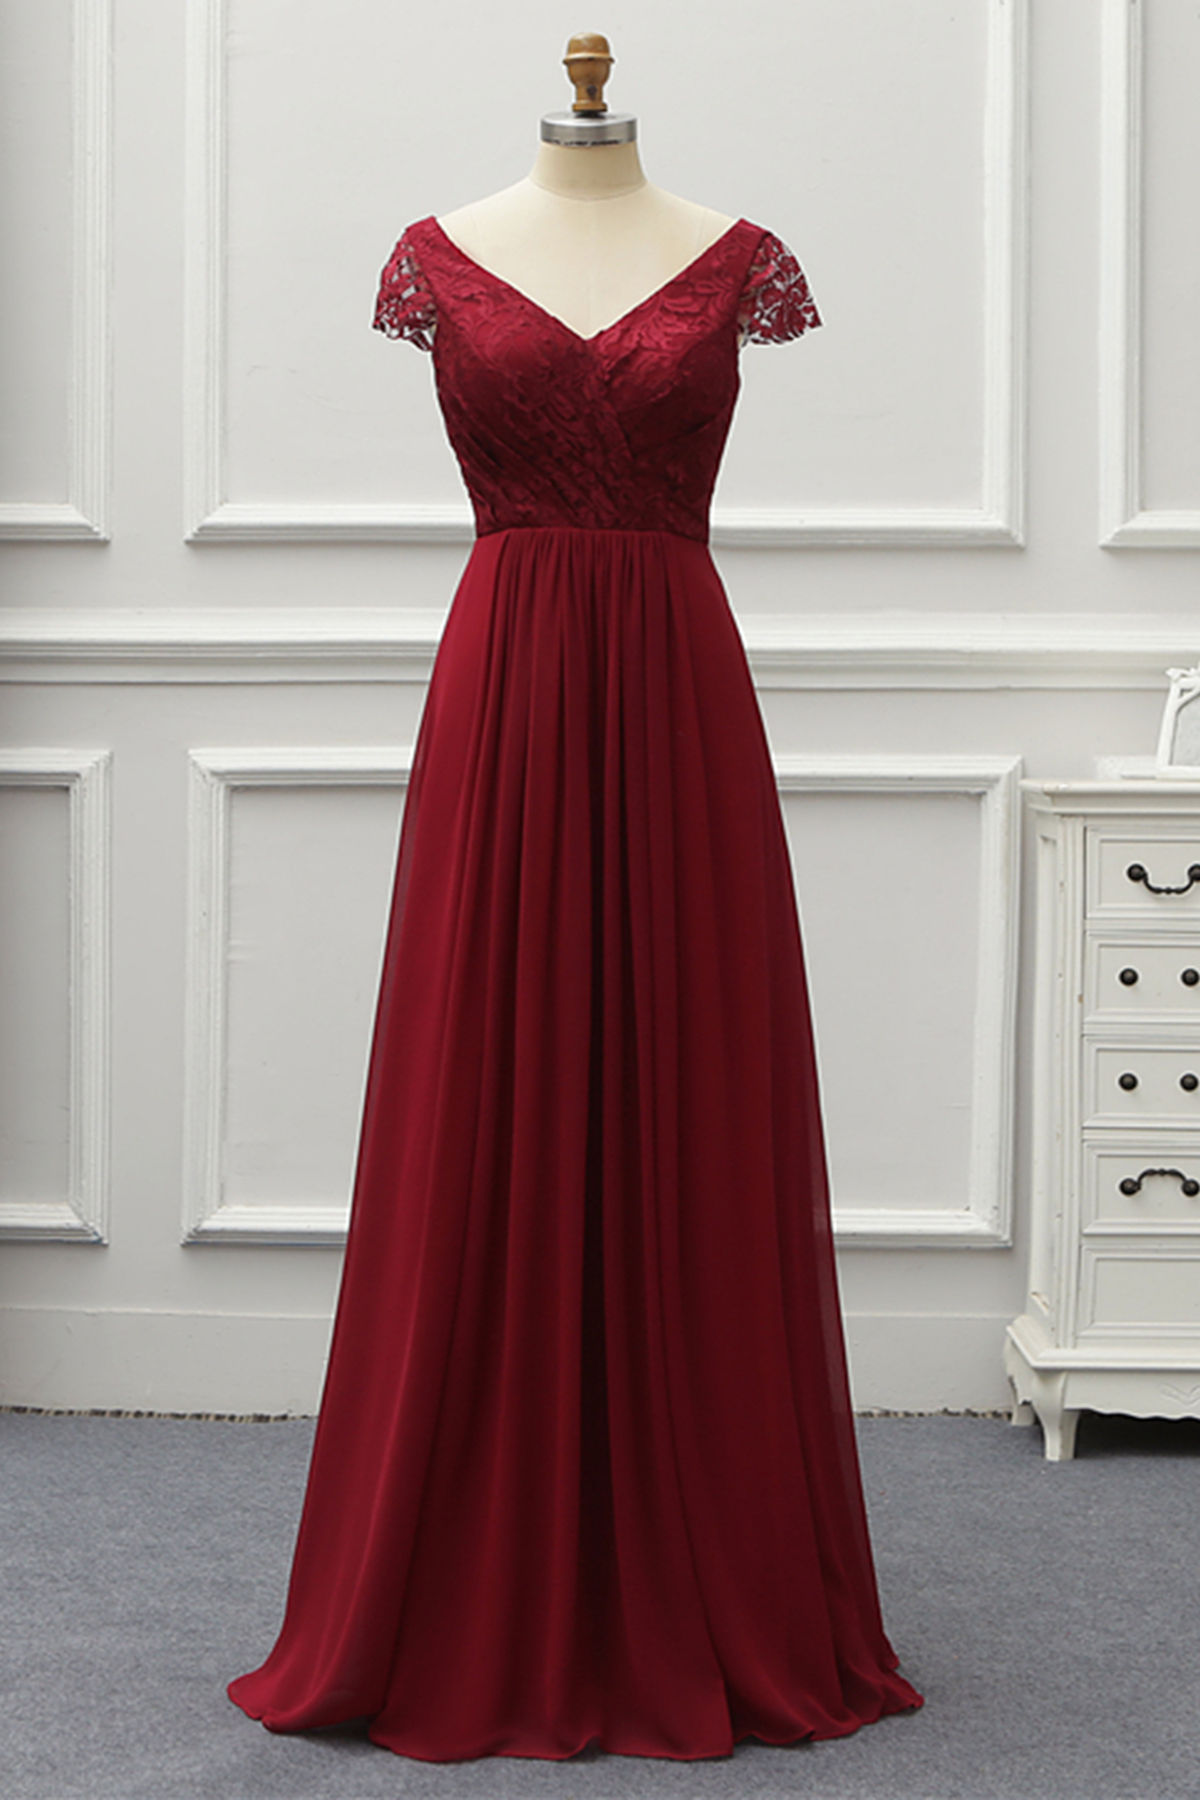 6dac9aada86 Two Pieces Burgundy Chiffon Long Prom Dress Evening Dress